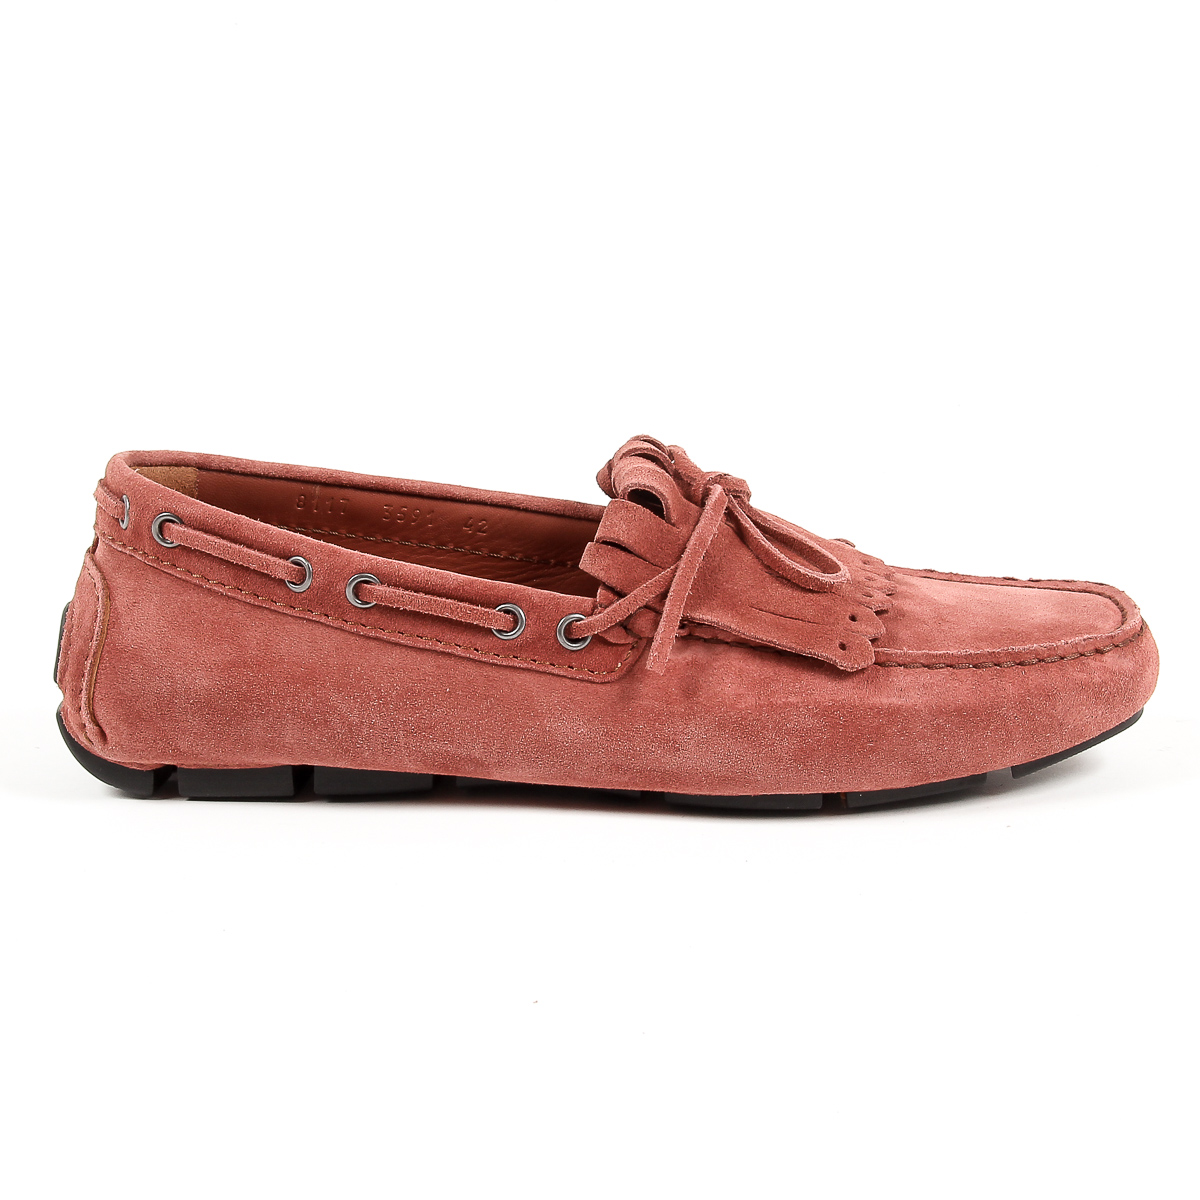 Primary image for V 1969 Italia Mens Loafer Coral GABRIEL